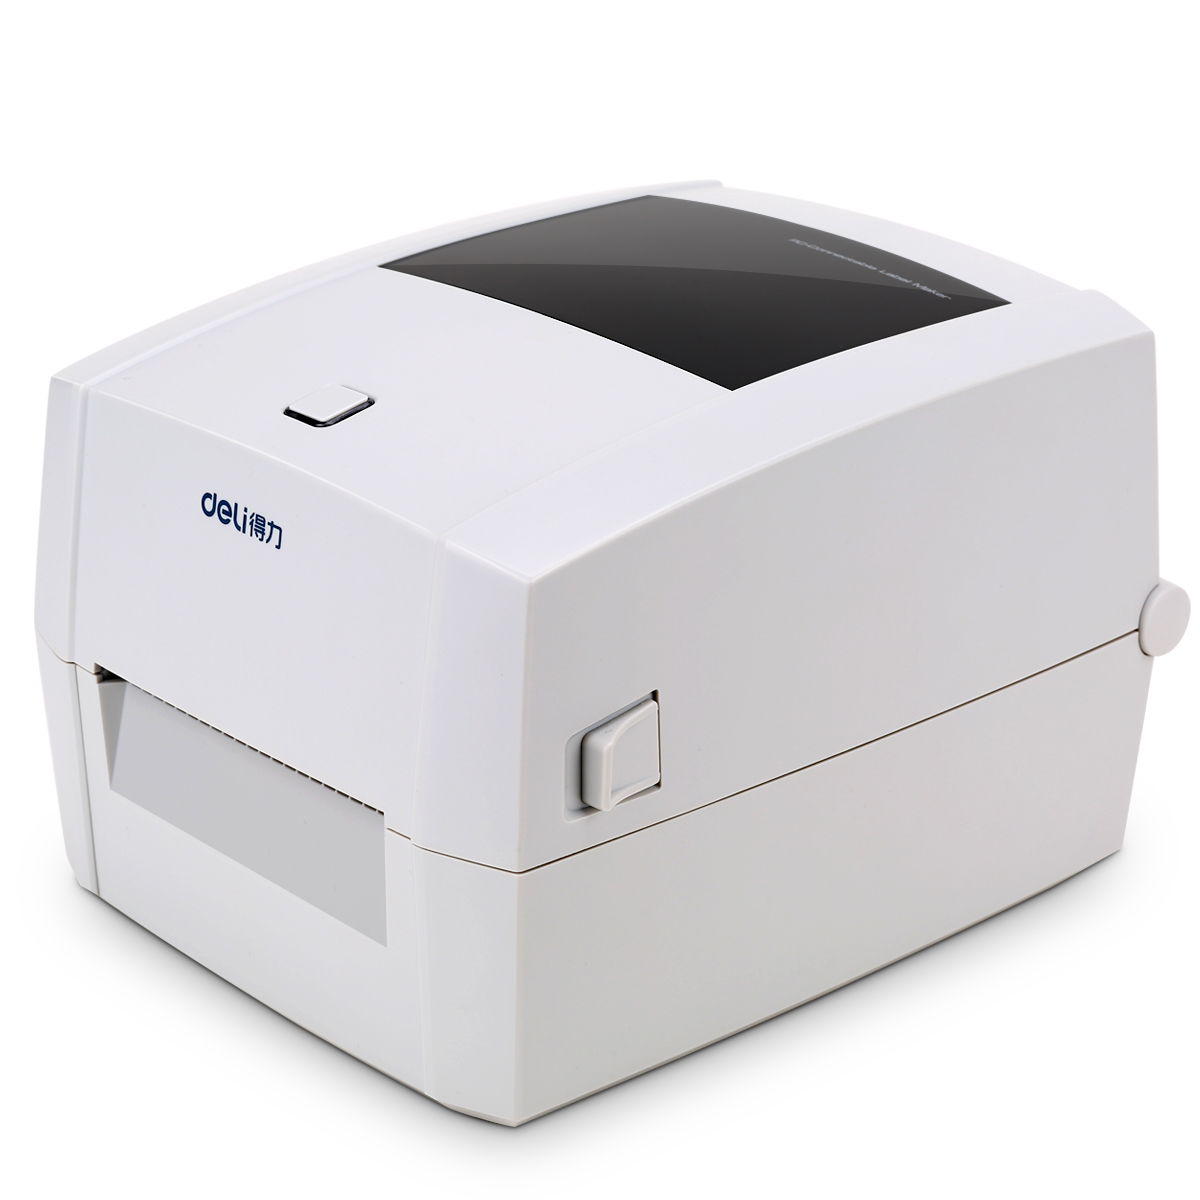 Deli deli DL-888D single electronic surface by thermal label printer express a single bar code sticker printing machine